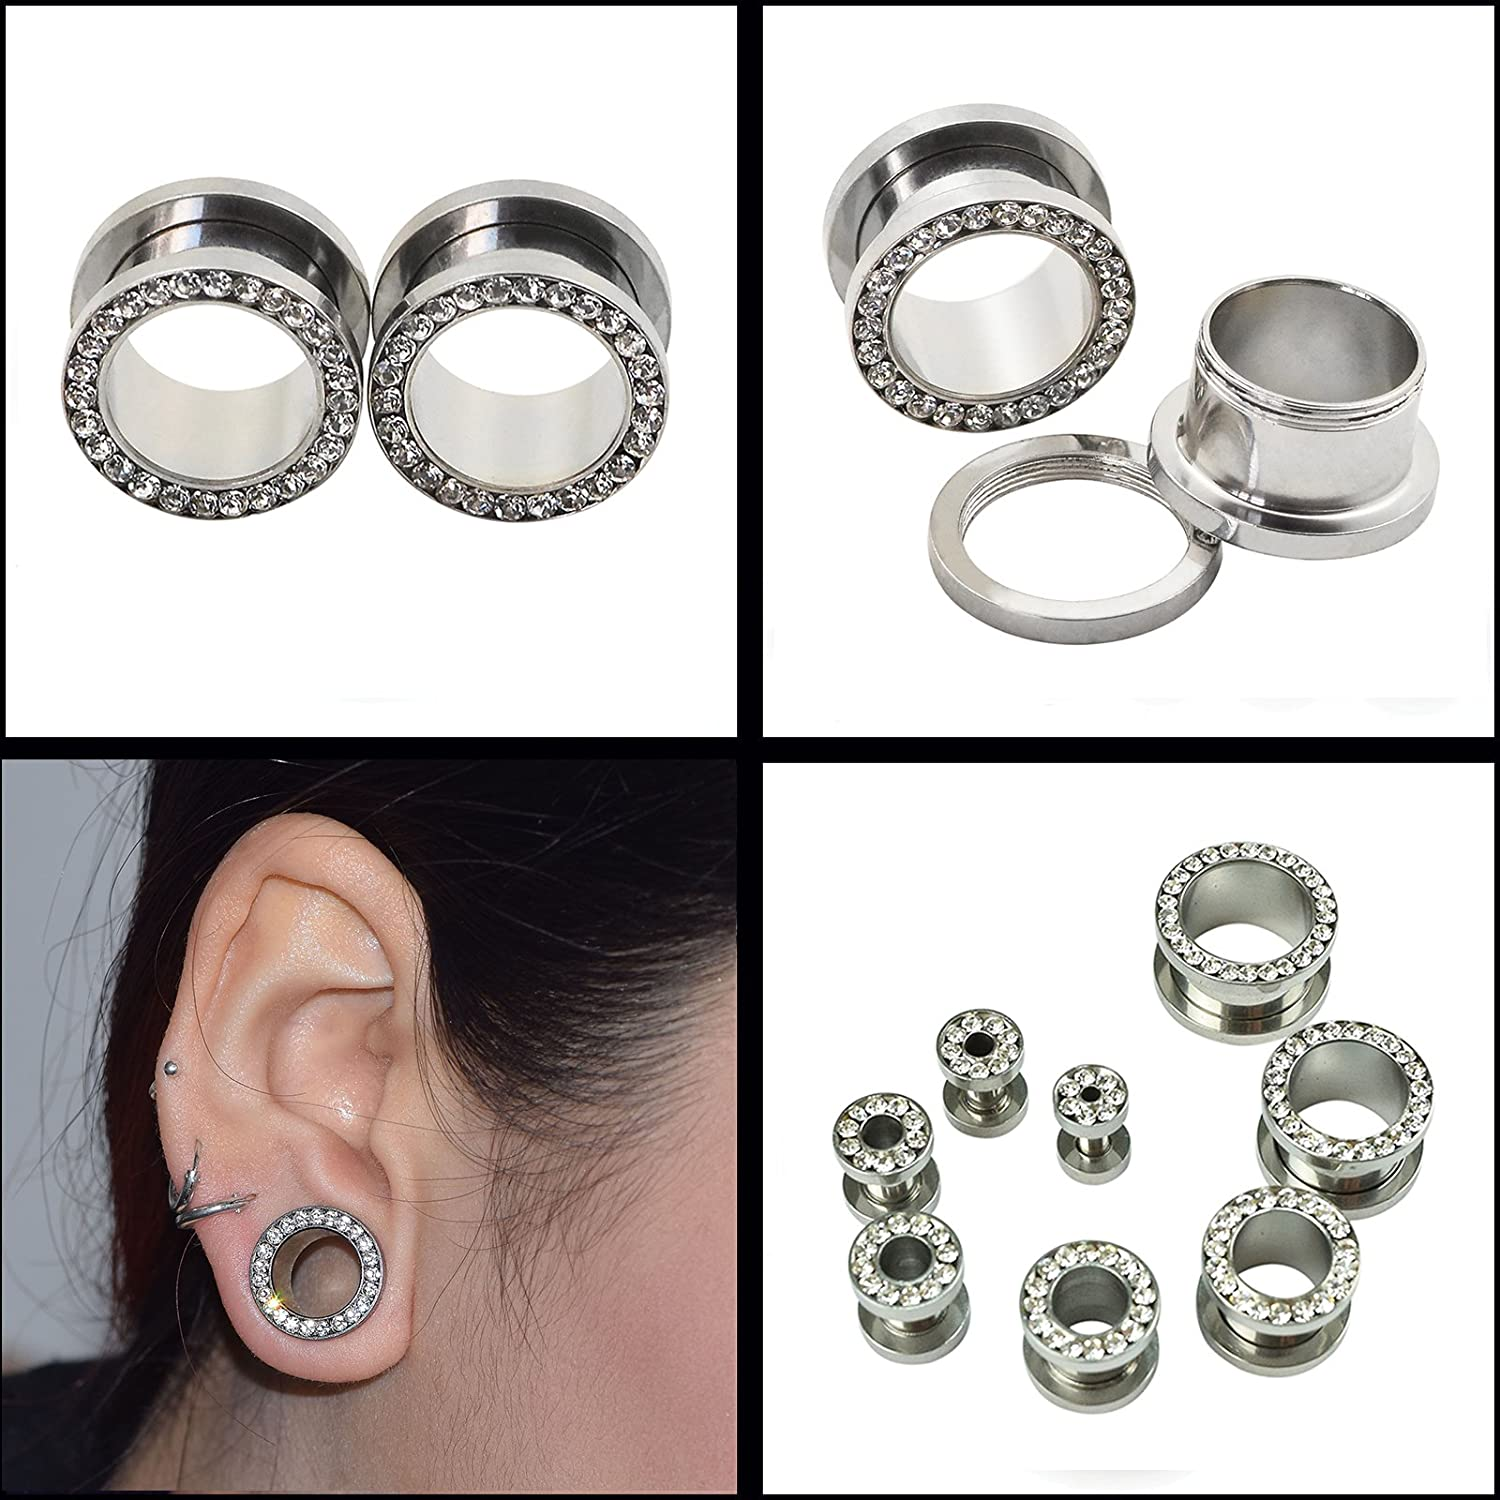 D/&M Jewelry 8pcs 8G-9//16 Stainless Steel Screwed Ear Tunnels /& Single Row Gem Tunnels Piercing Qianmin Co.Ltd SCRRGWBSET05